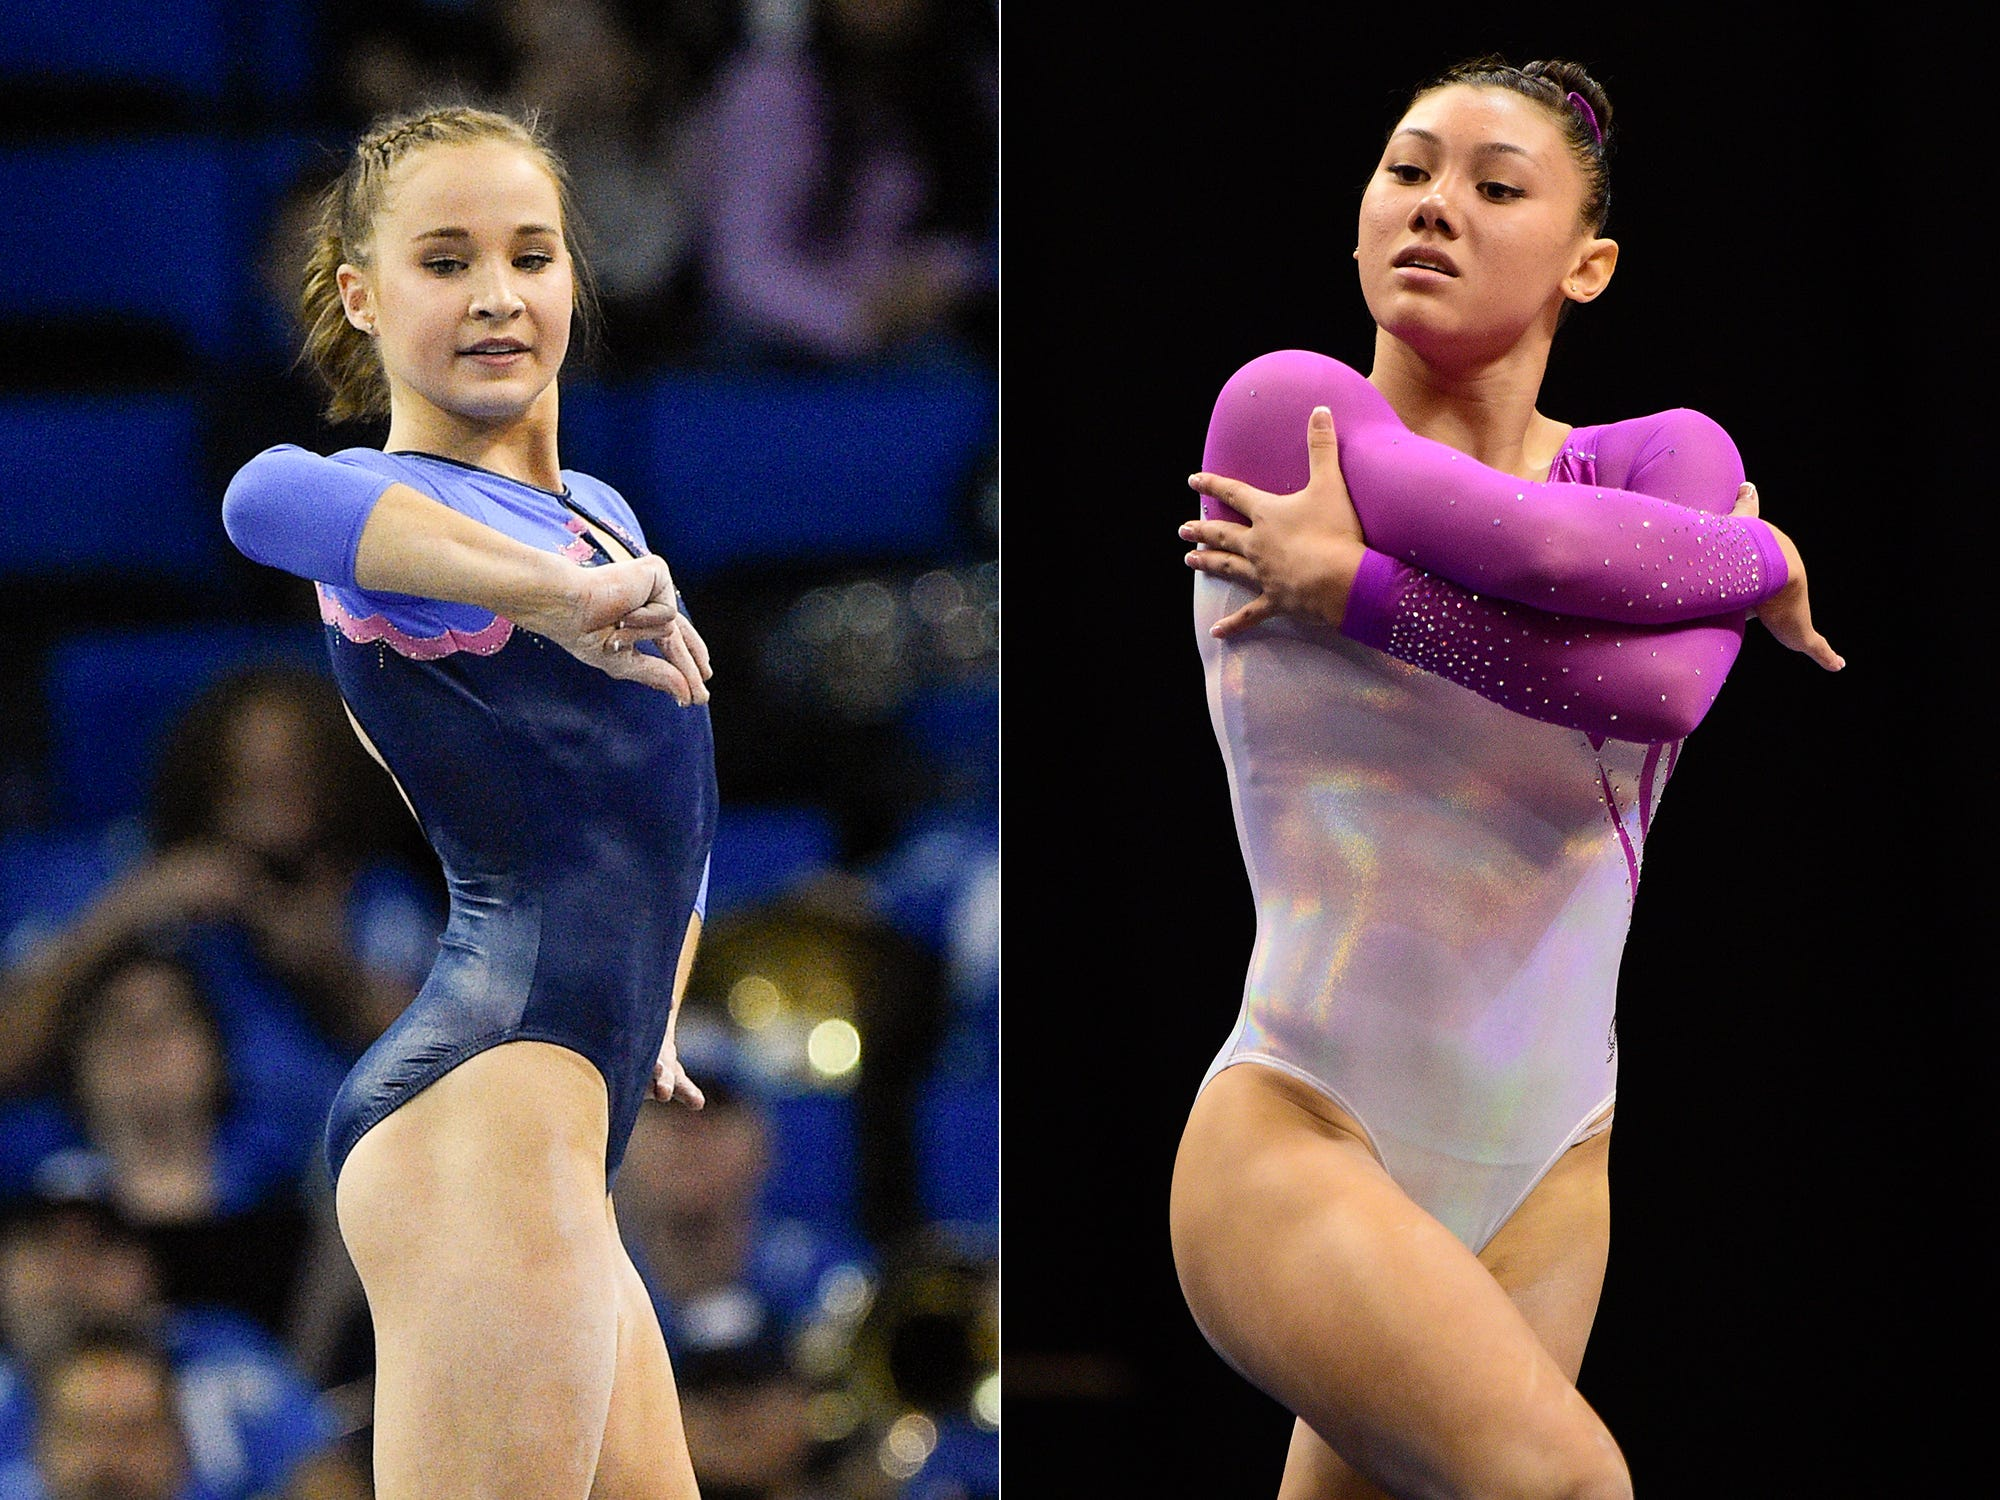 Olympic gymnasts Madison Kocian and Kyla Ross reveal abuse by Larry Nassar